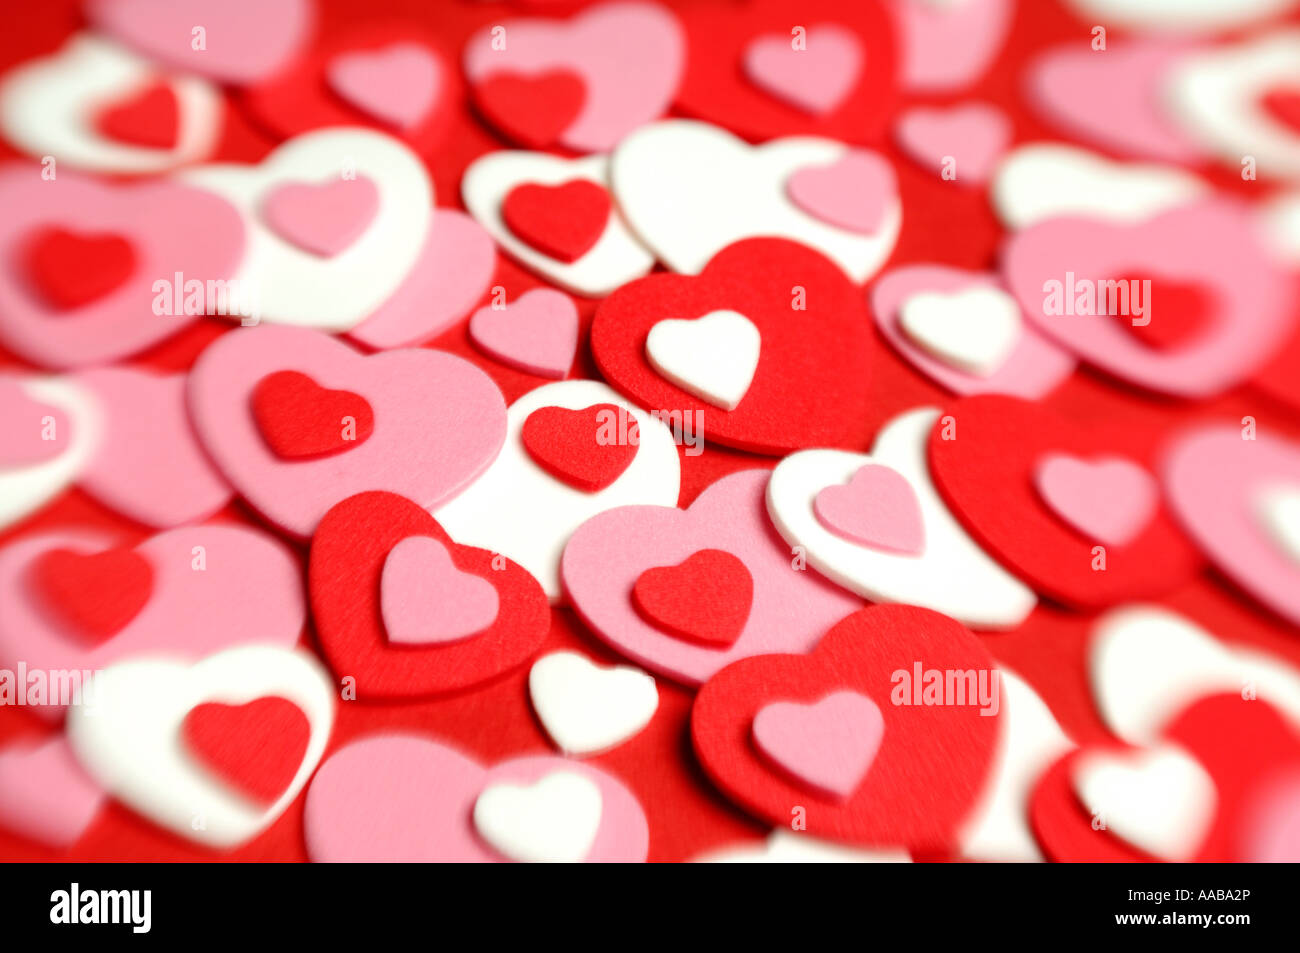 Heart shapes - Stock Image